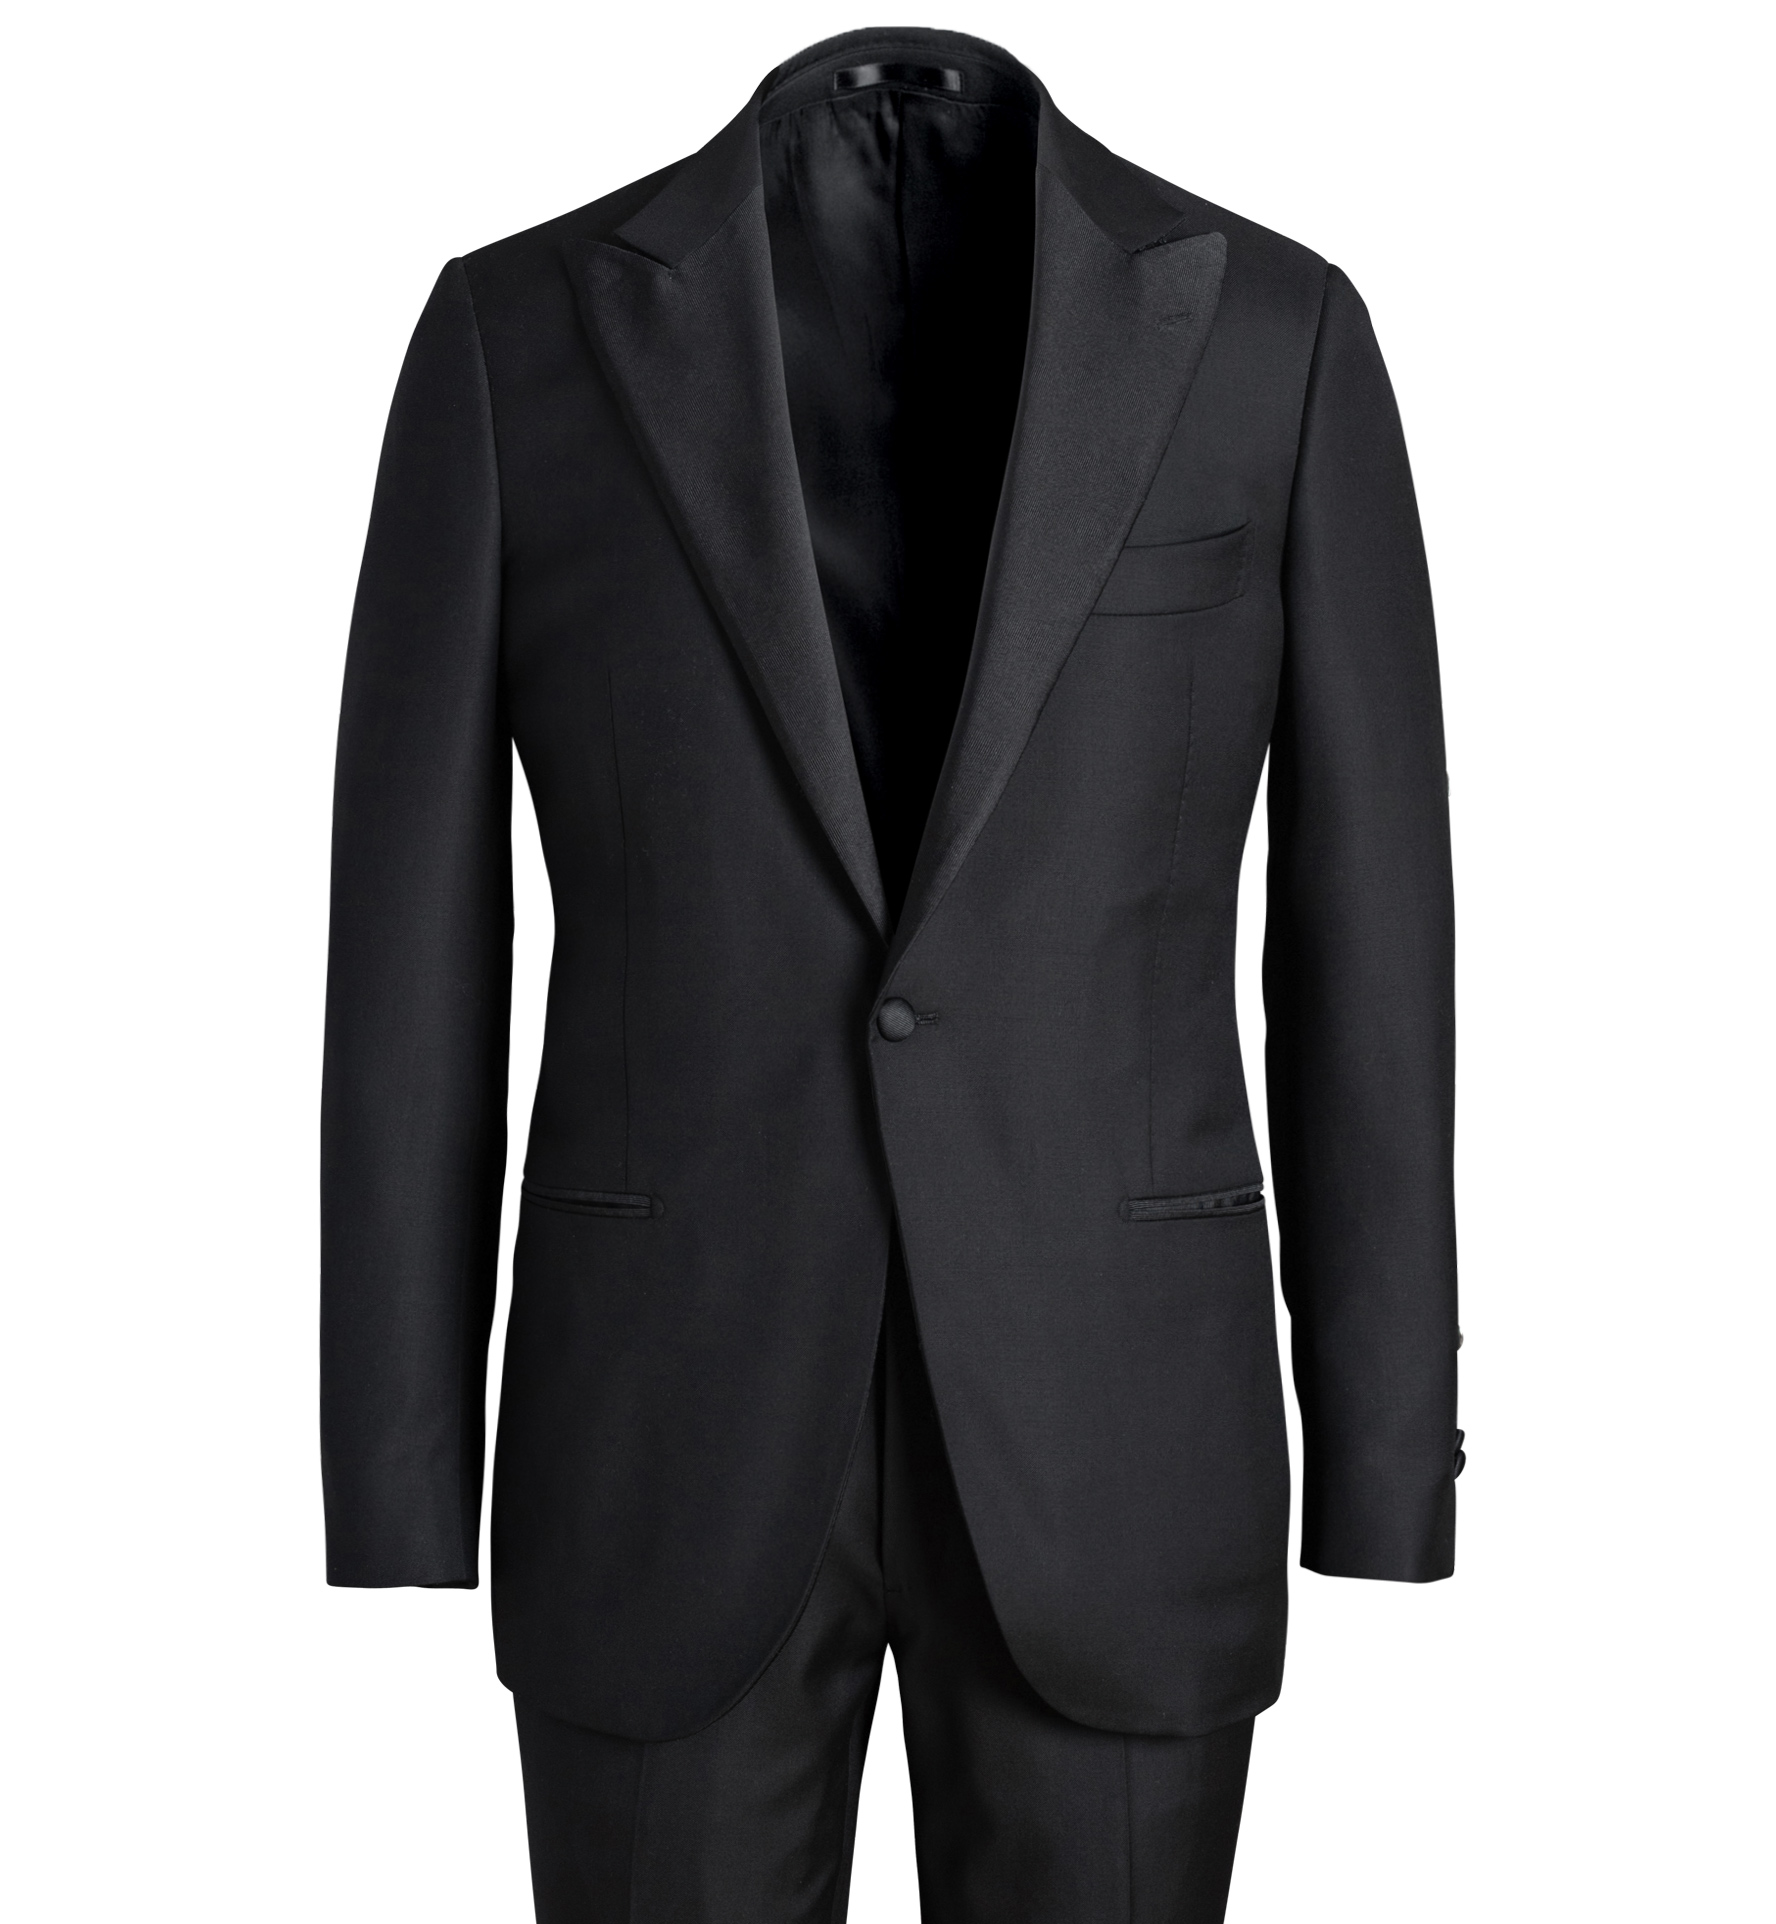 Zoom Image of Mayfair Black Wool Tuxedo